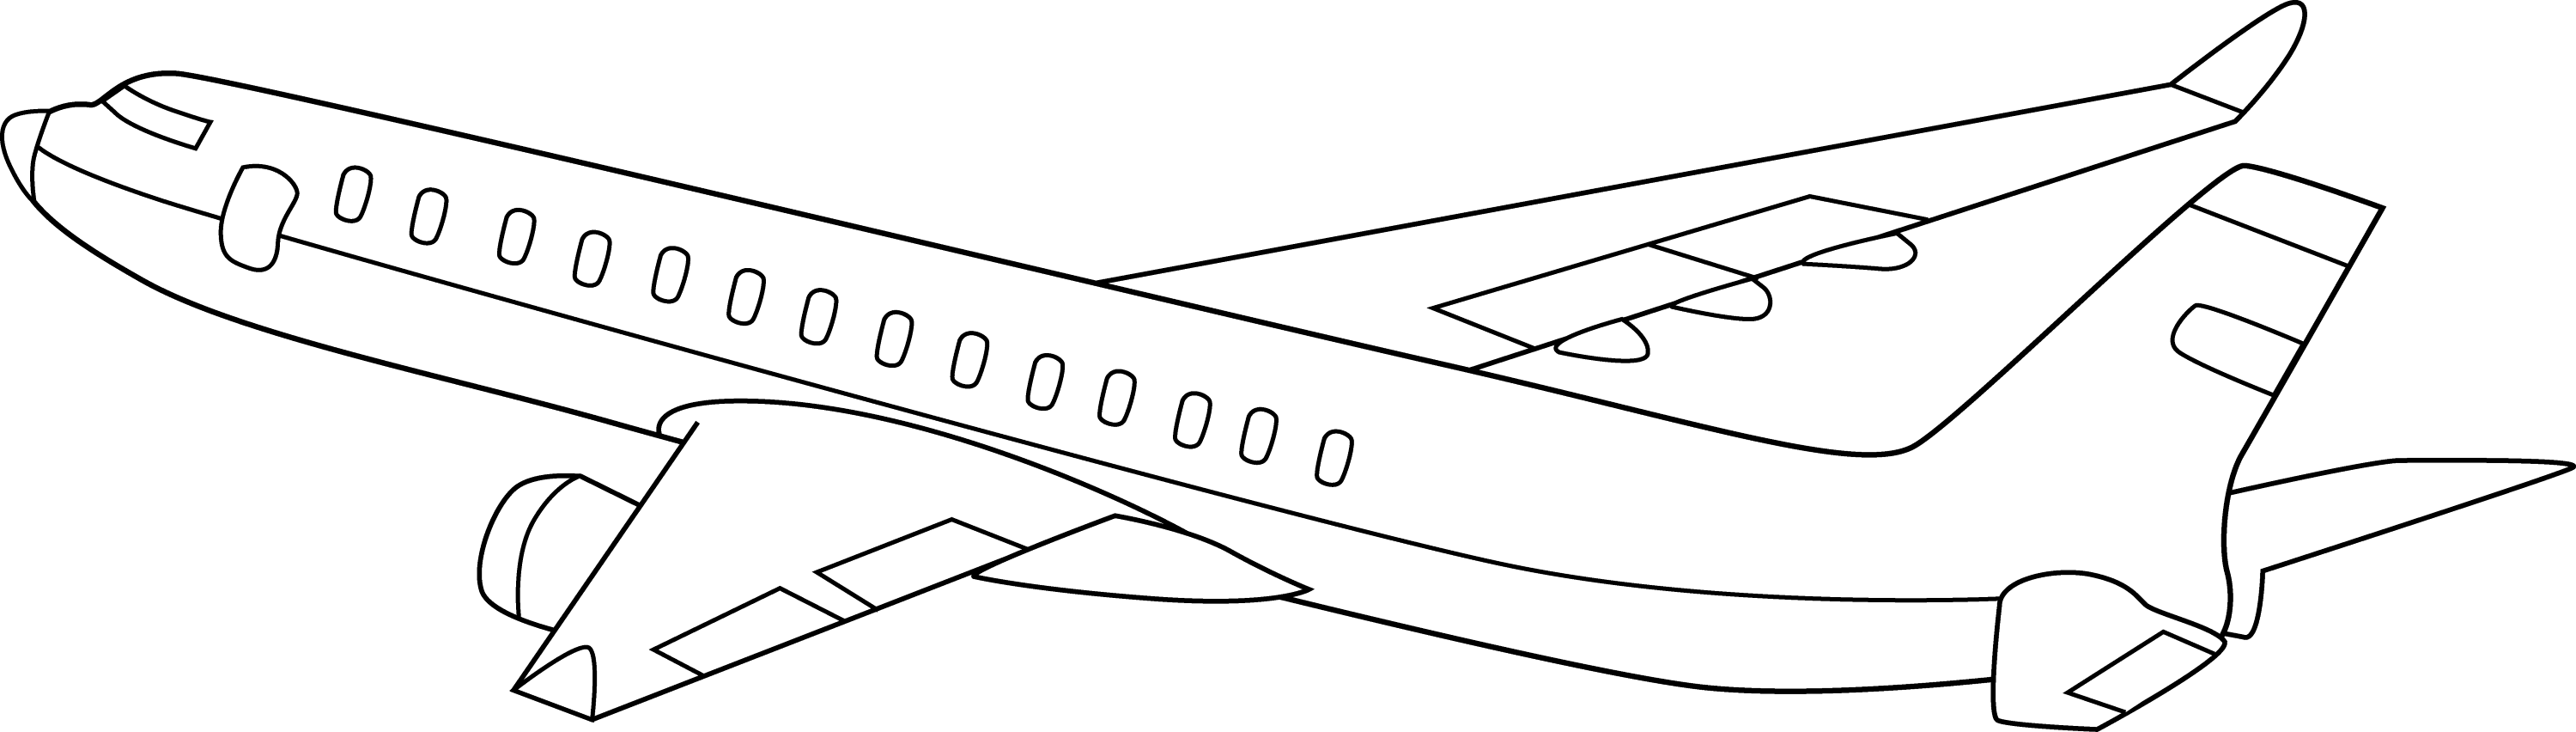 commercial airplane line art free clip art